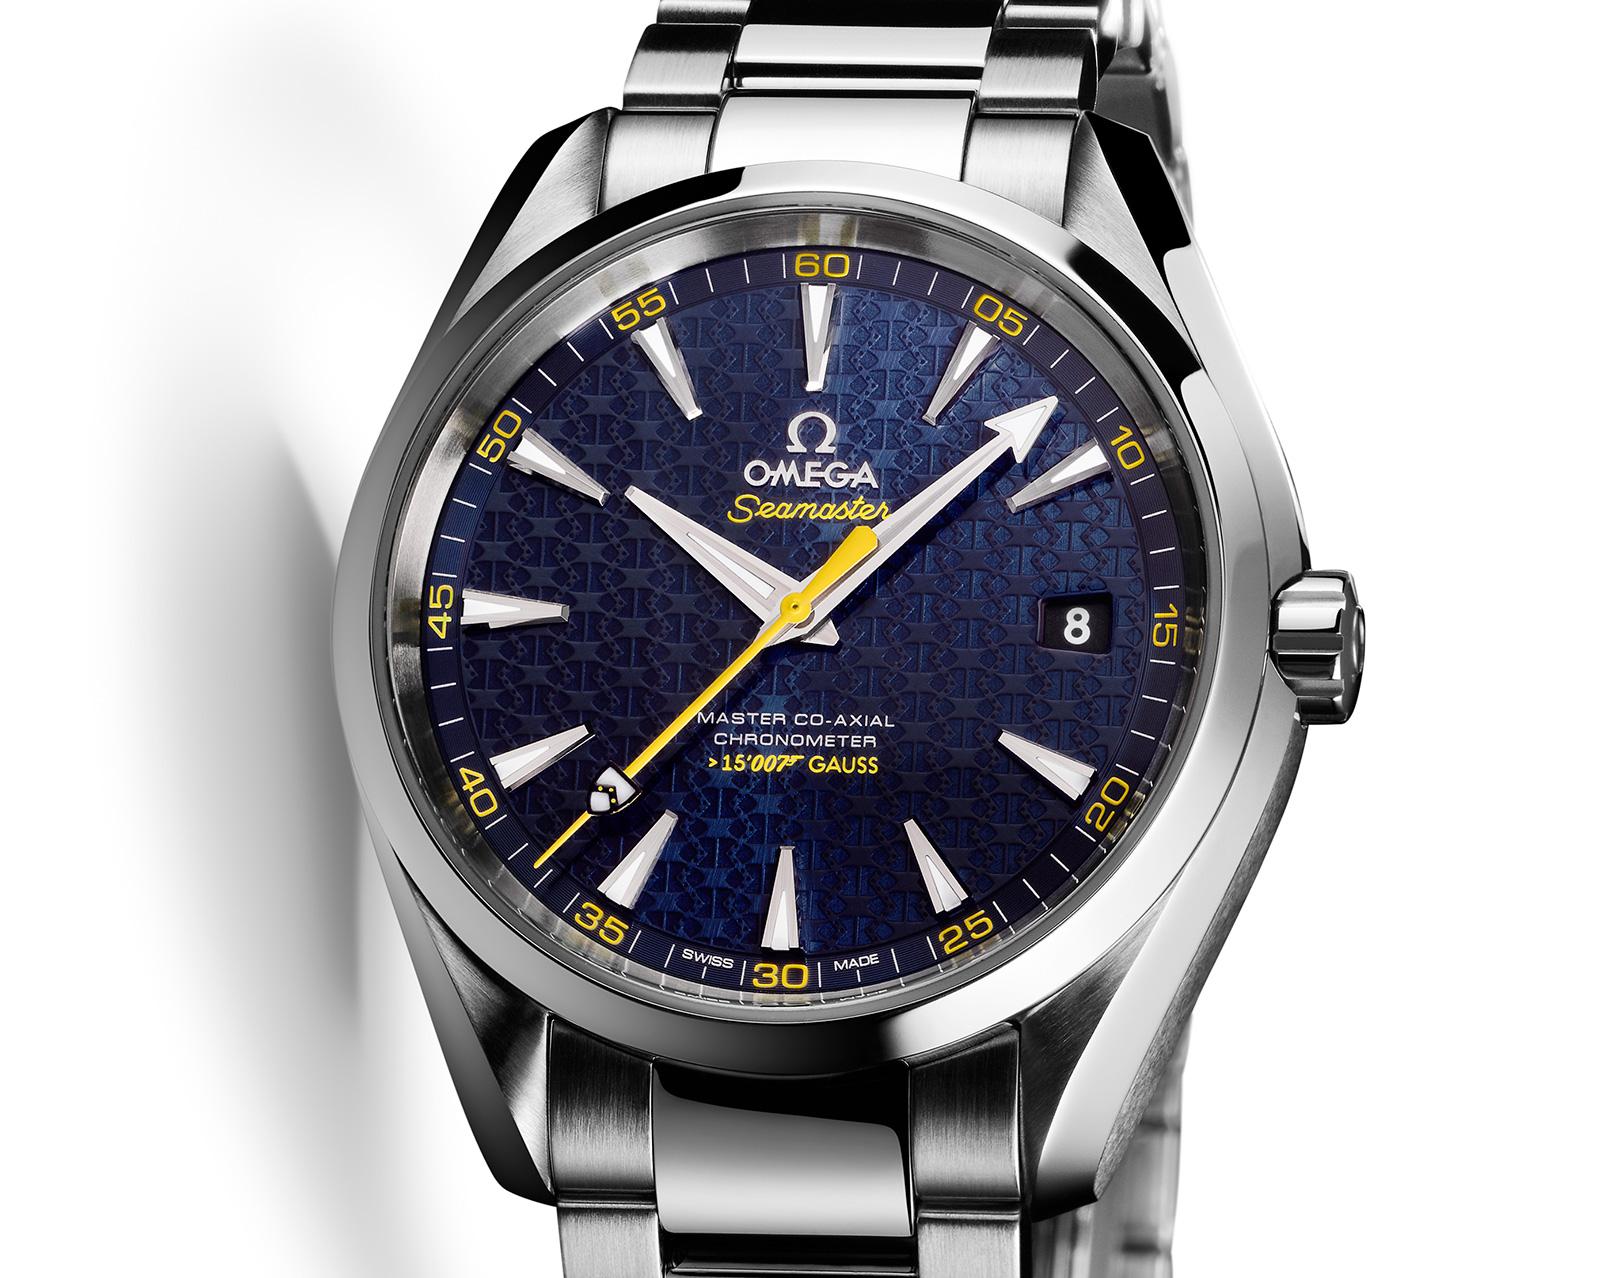 419d98fffc9 Watches By SJX  Pre-Basel 2015  Introducing The Omega Seamaster Aqua ...